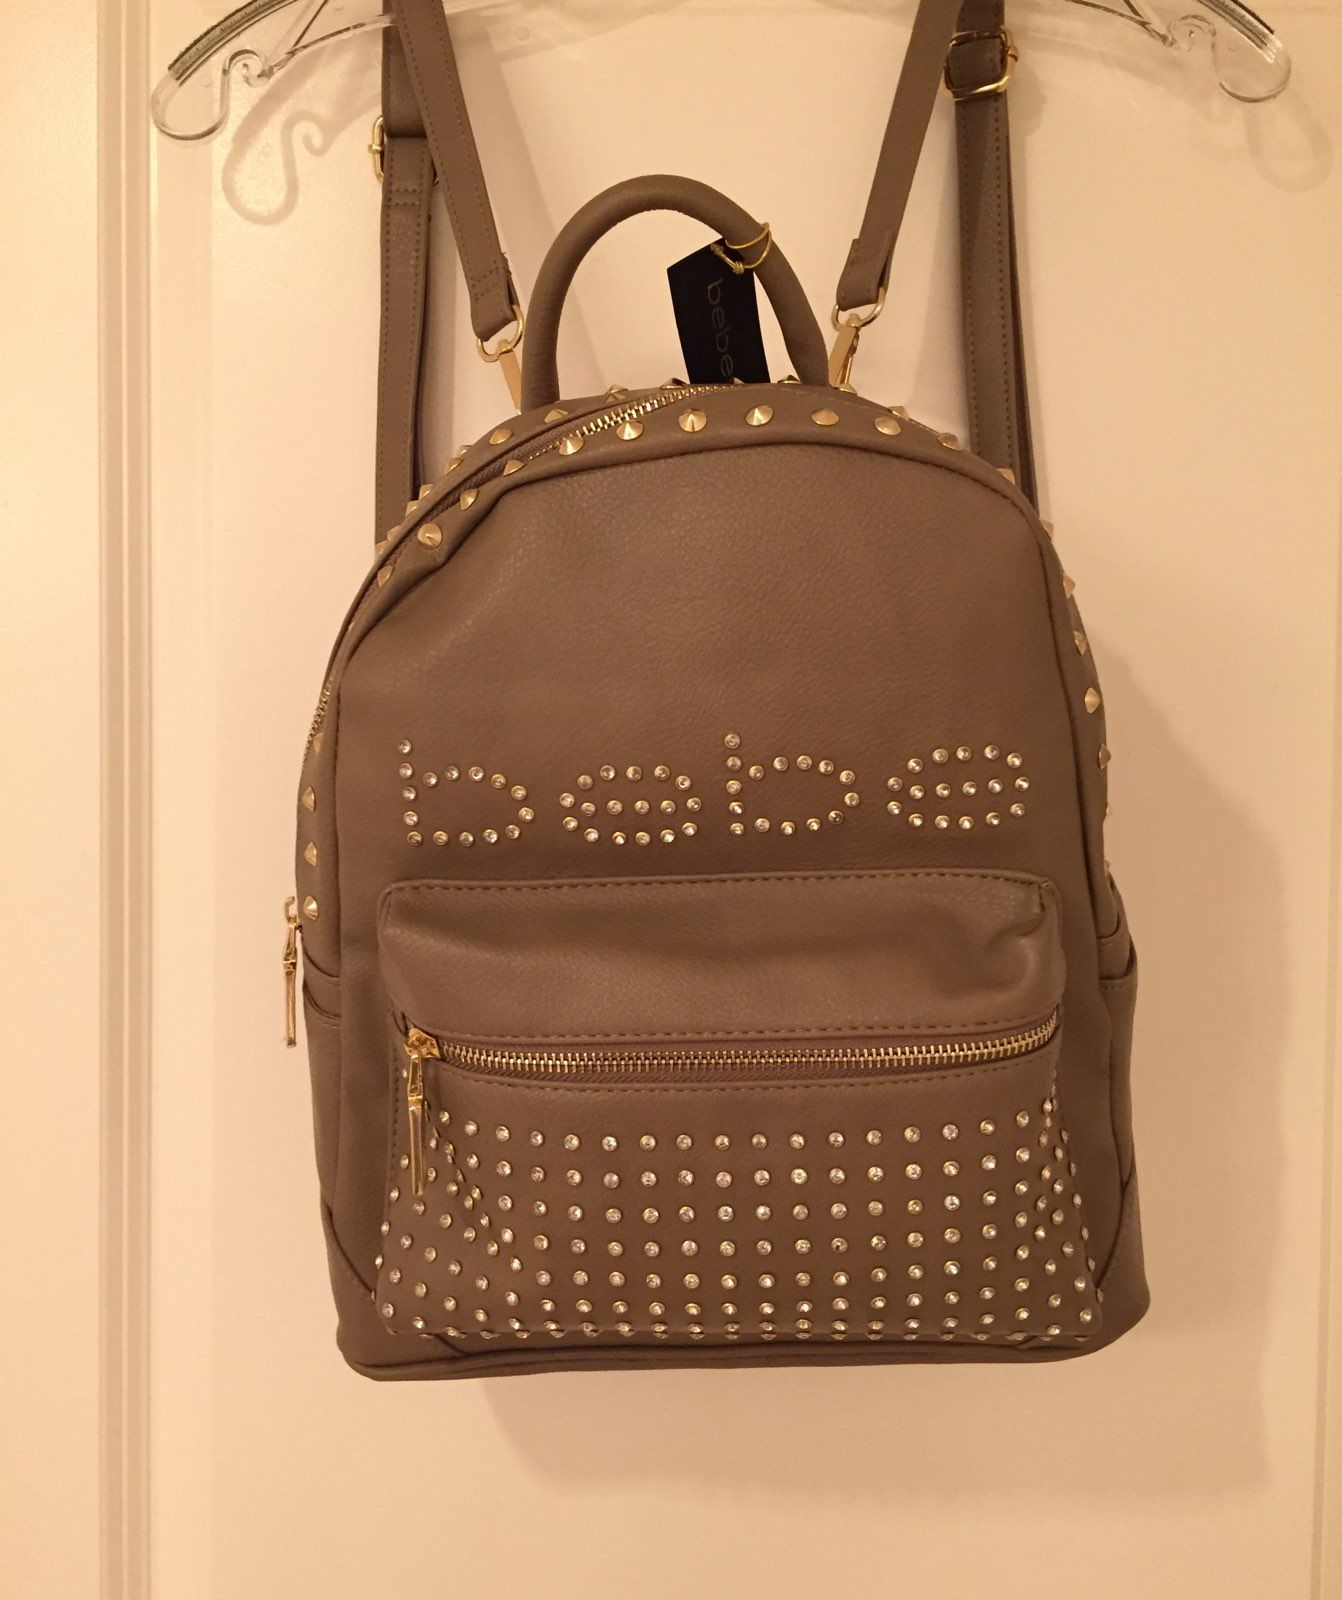 Bebe Leather Backpack Large - Mercari: BUY & SELL THINGS YOU LOVE